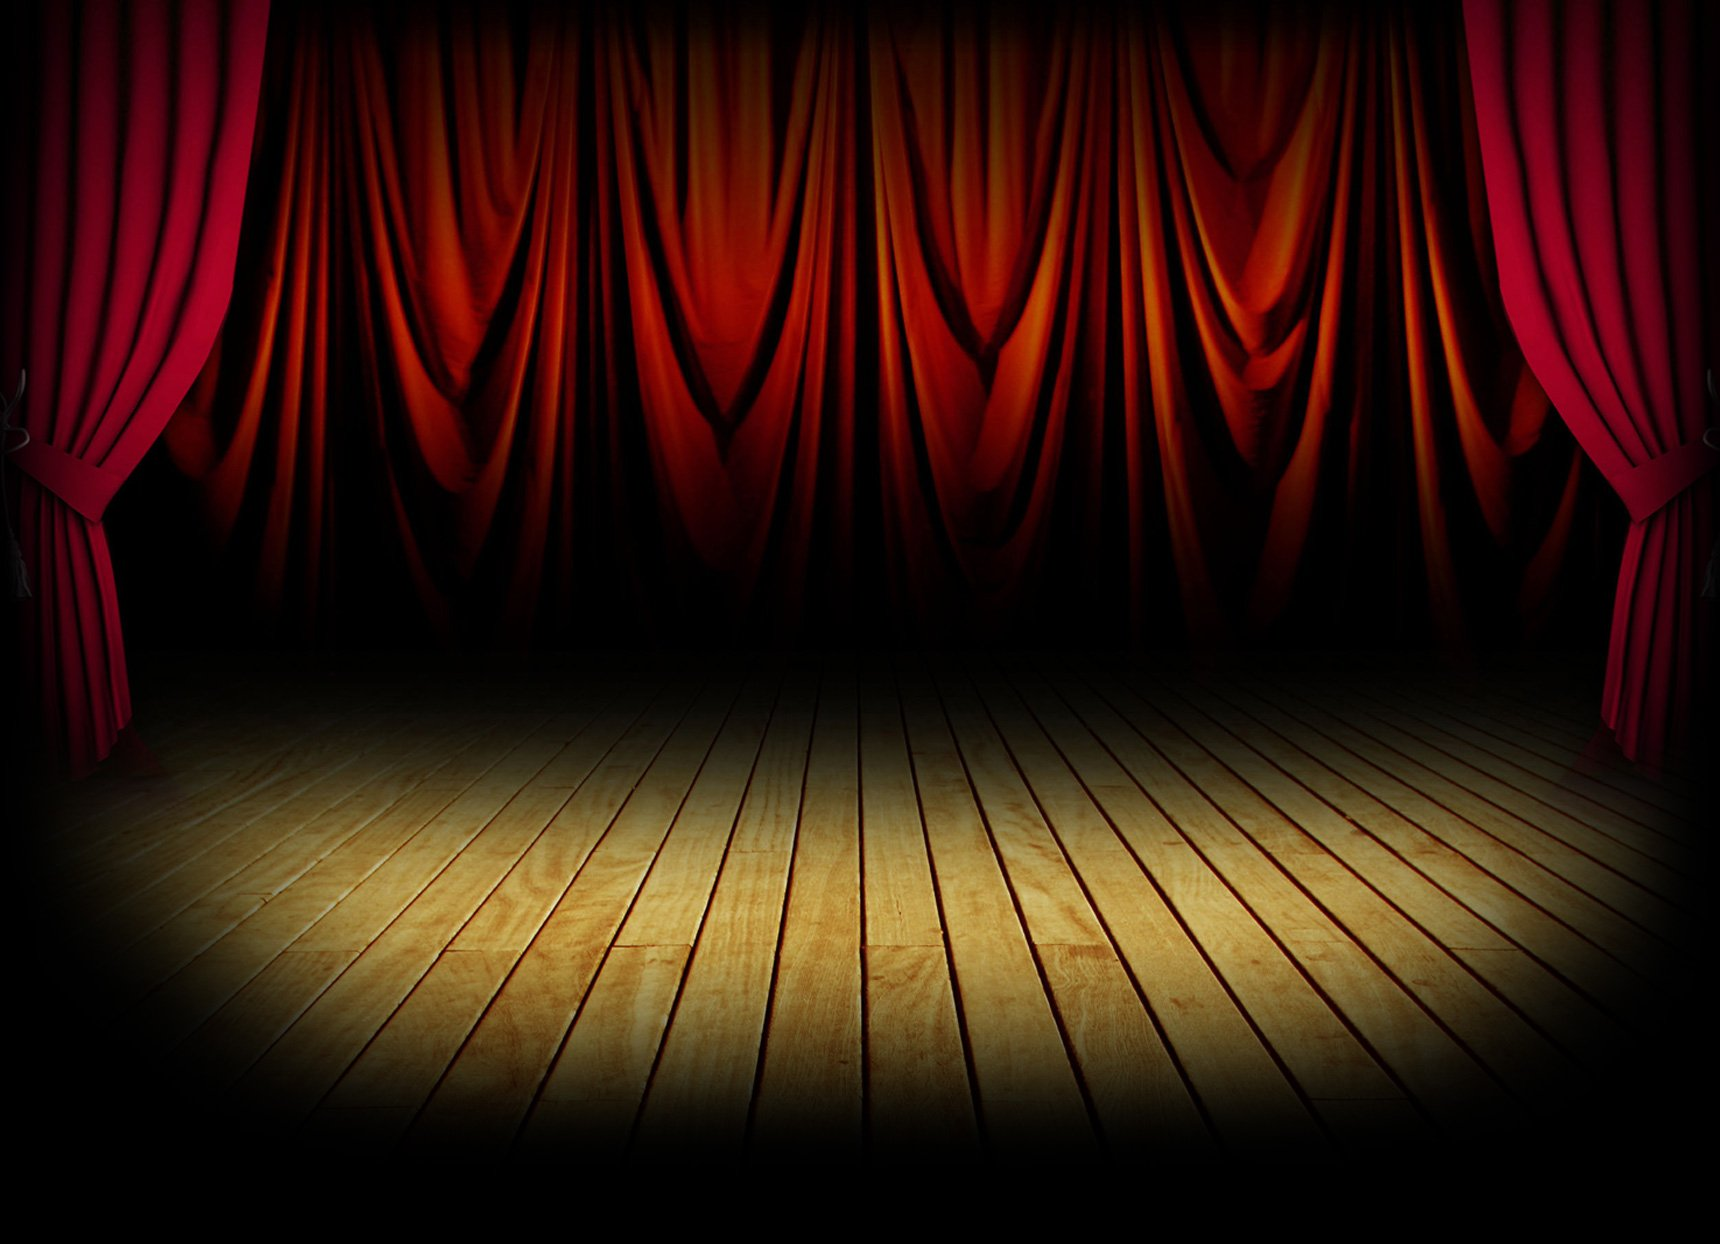 National Festival Circus Graphic Backgrounds for Powerpoint 1720x1244